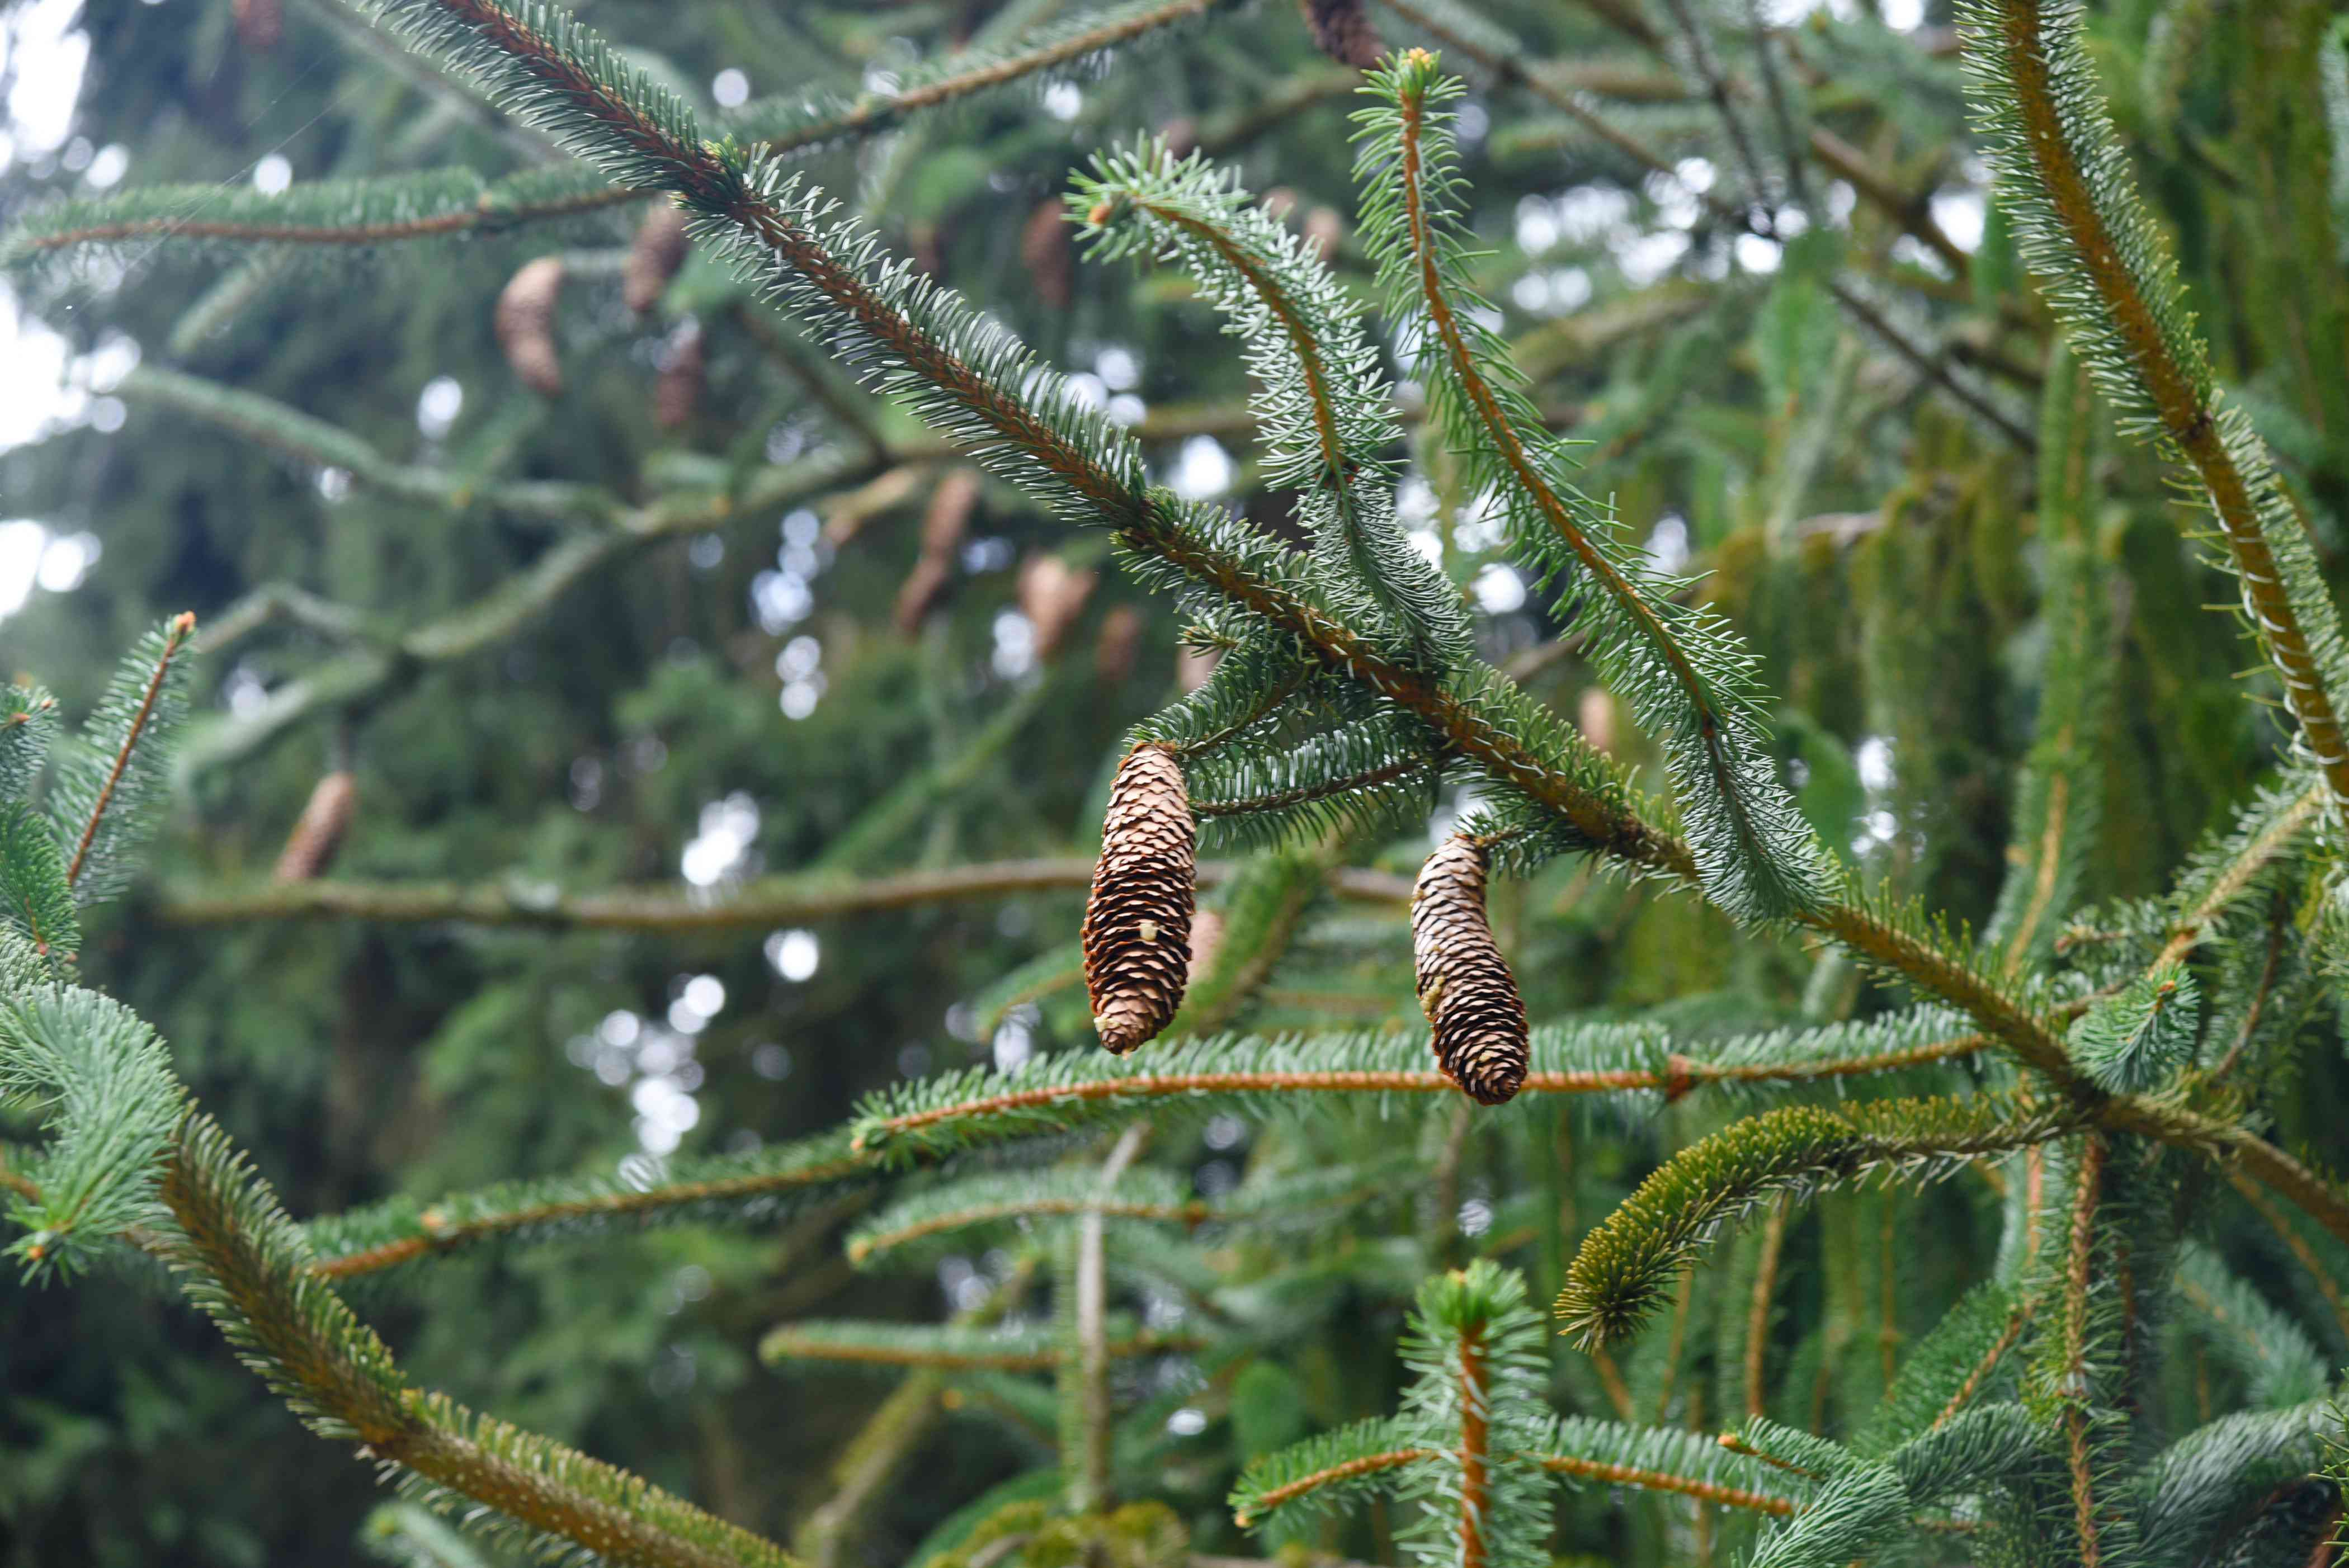 Weeping Norway spruce tree with long thin branches with short evergreen needles and long pinecones hanging